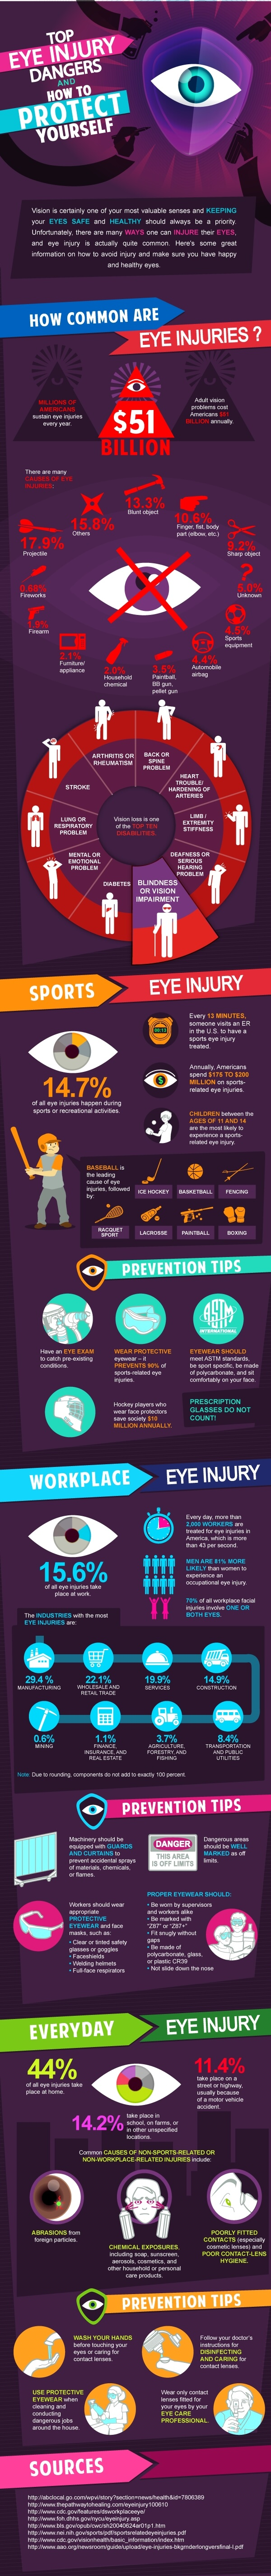 TOP EYE INJURY DANGERS AND HOW TO PROTECT YOURSELF Infographic